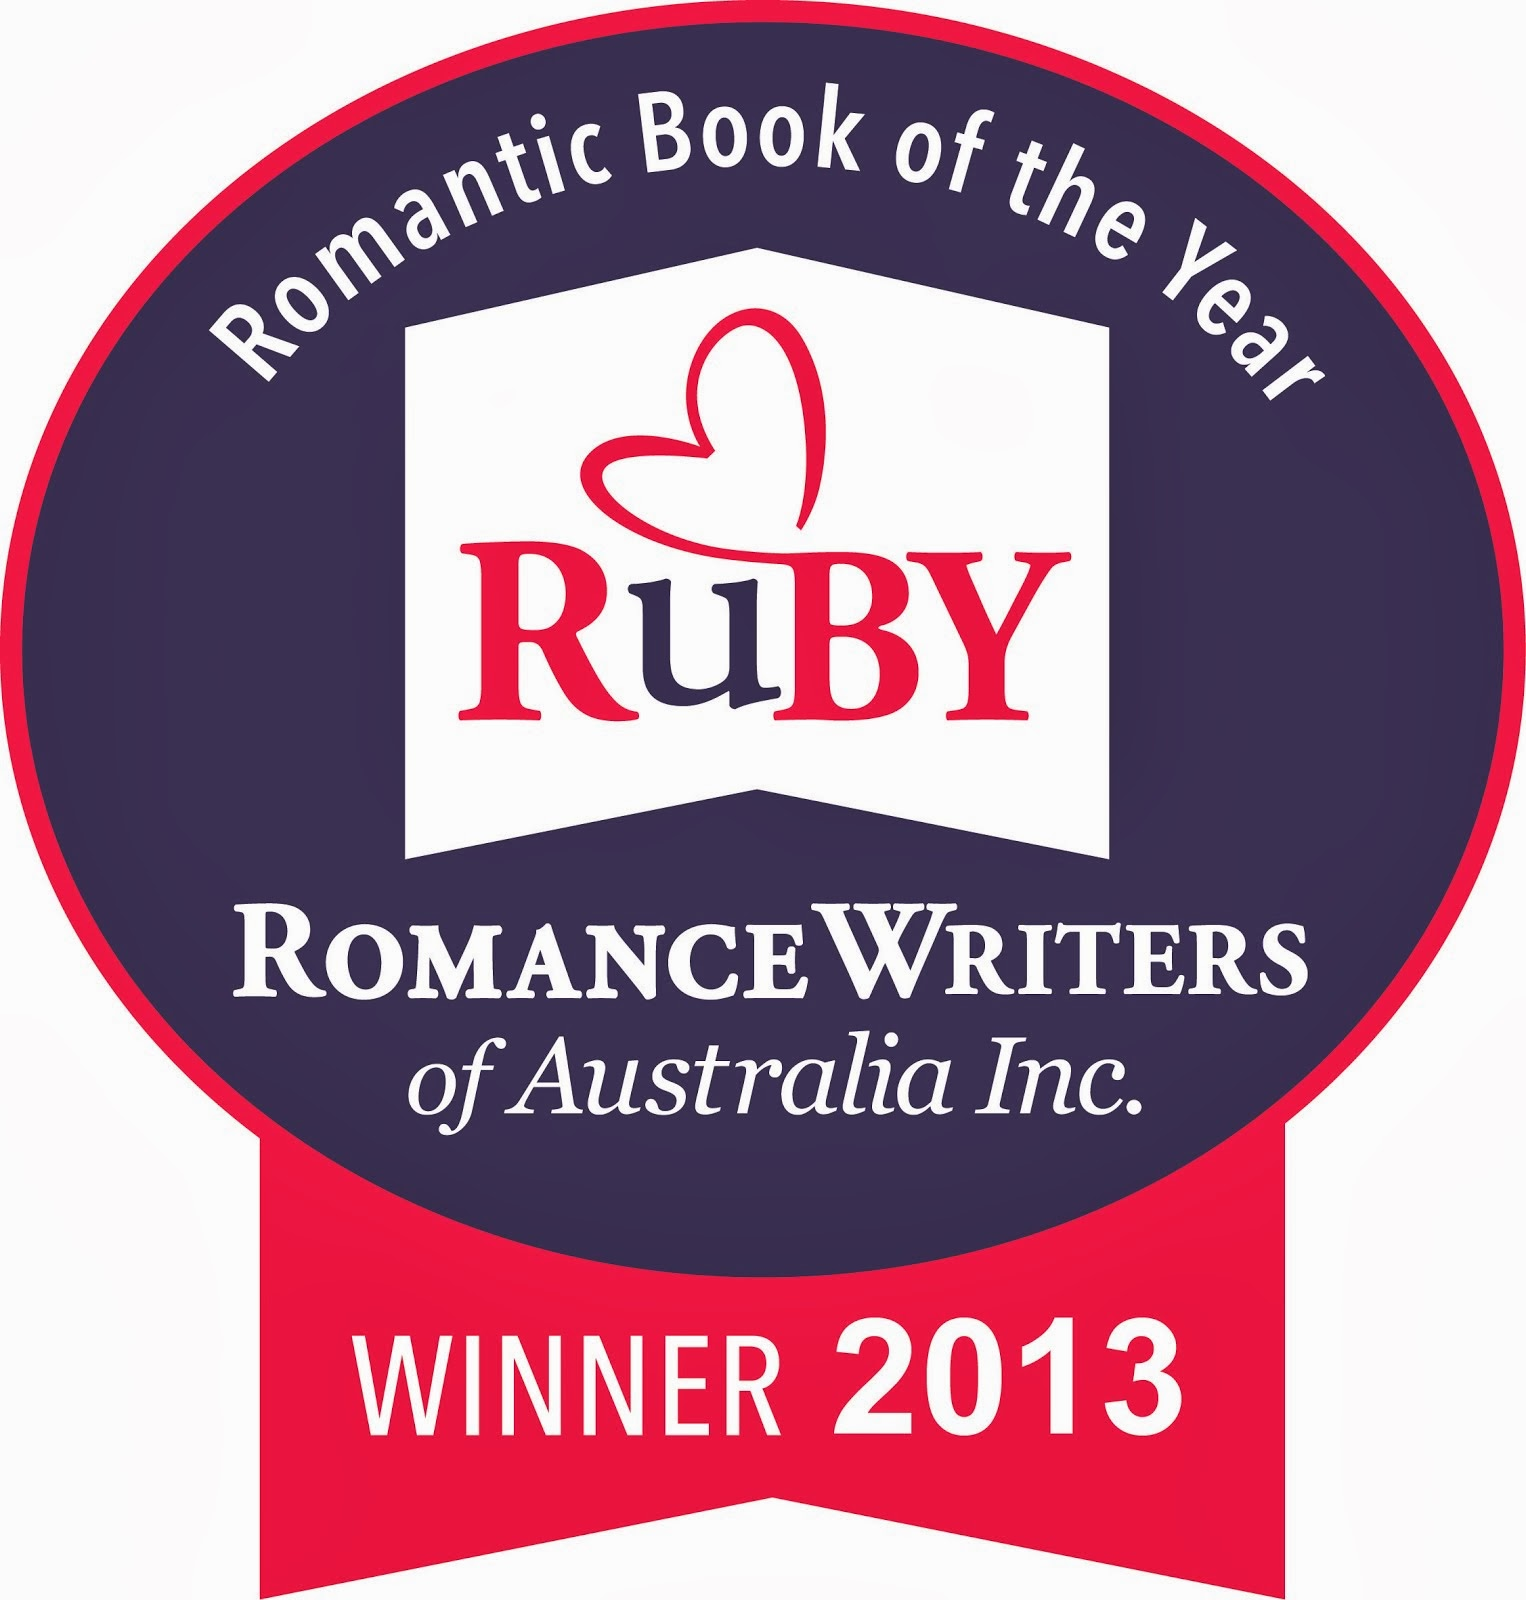 MARRYING THE ENEMY, RBY WINNER 2013